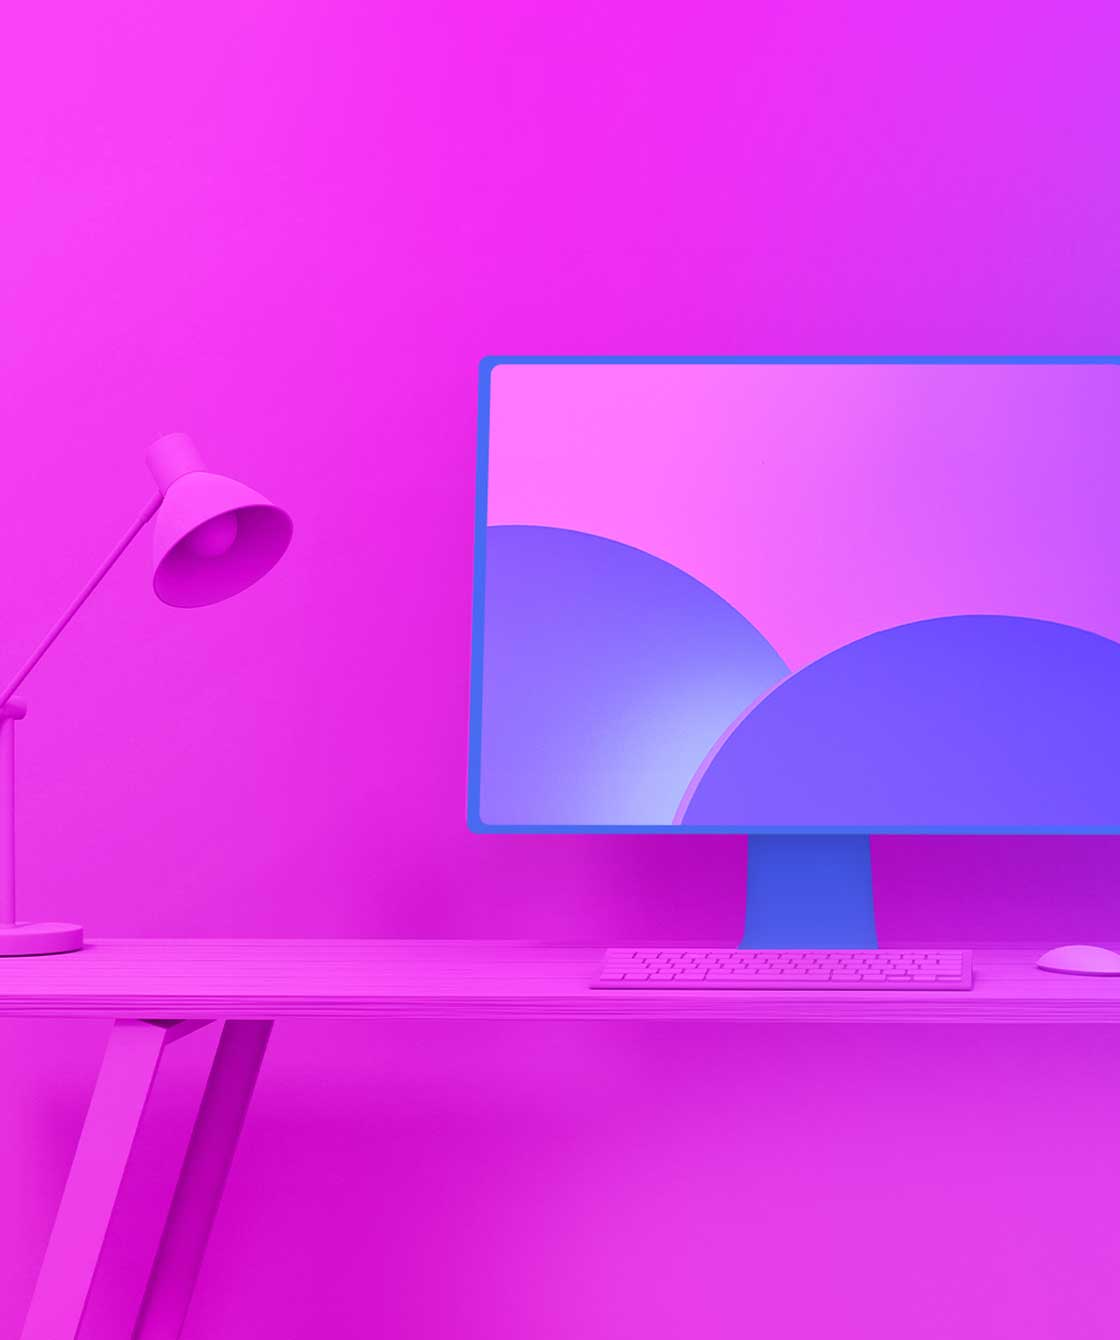 Minimalist office space with a desk and computer, shaded in pink.